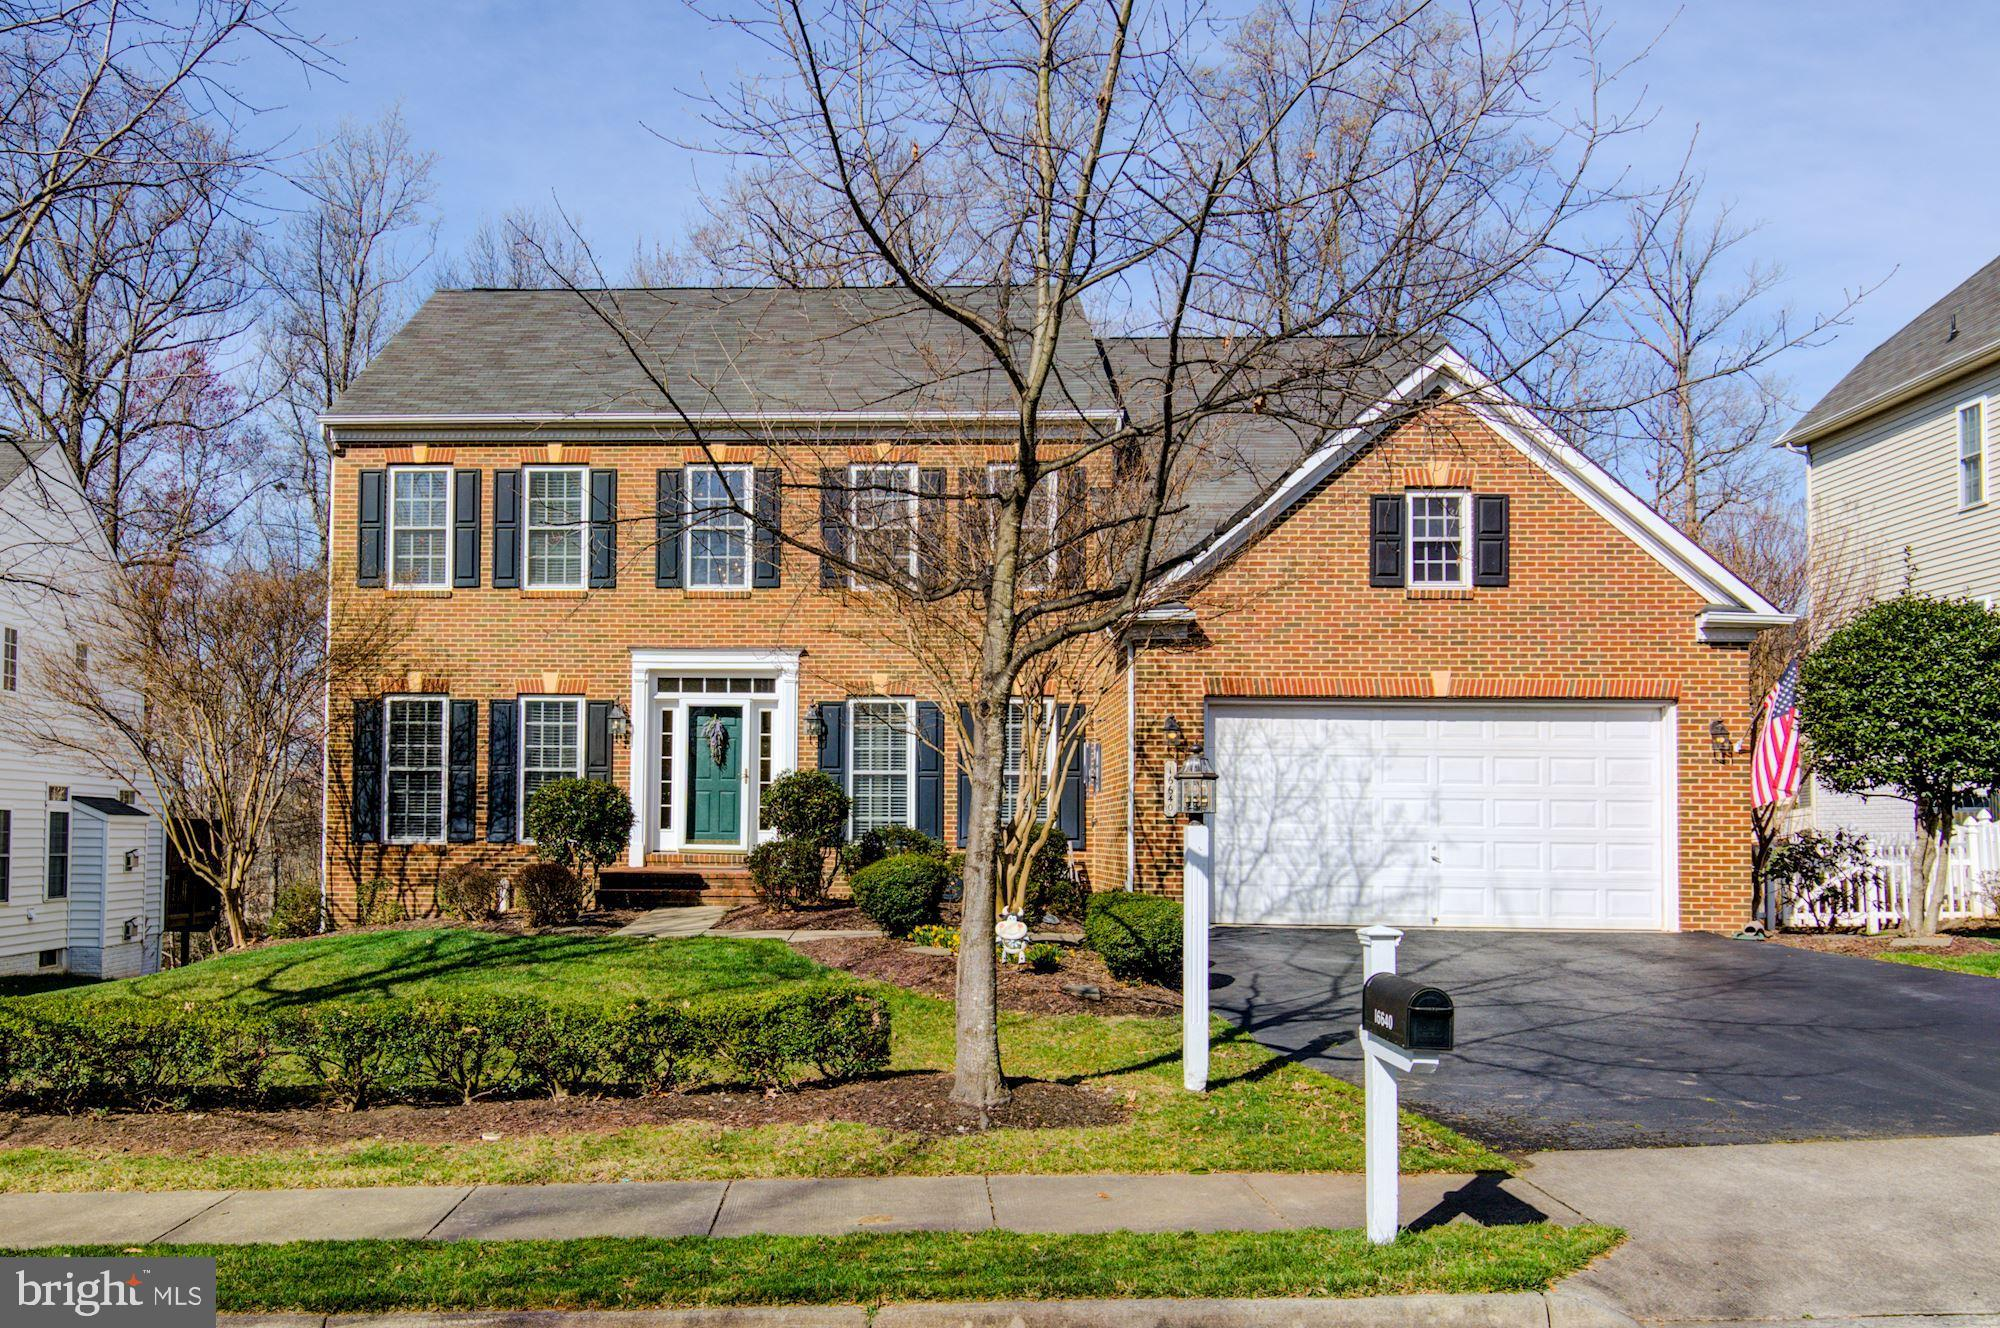 16640 RADCLIFFE LANE, WOODBRIDGE, VA 22191